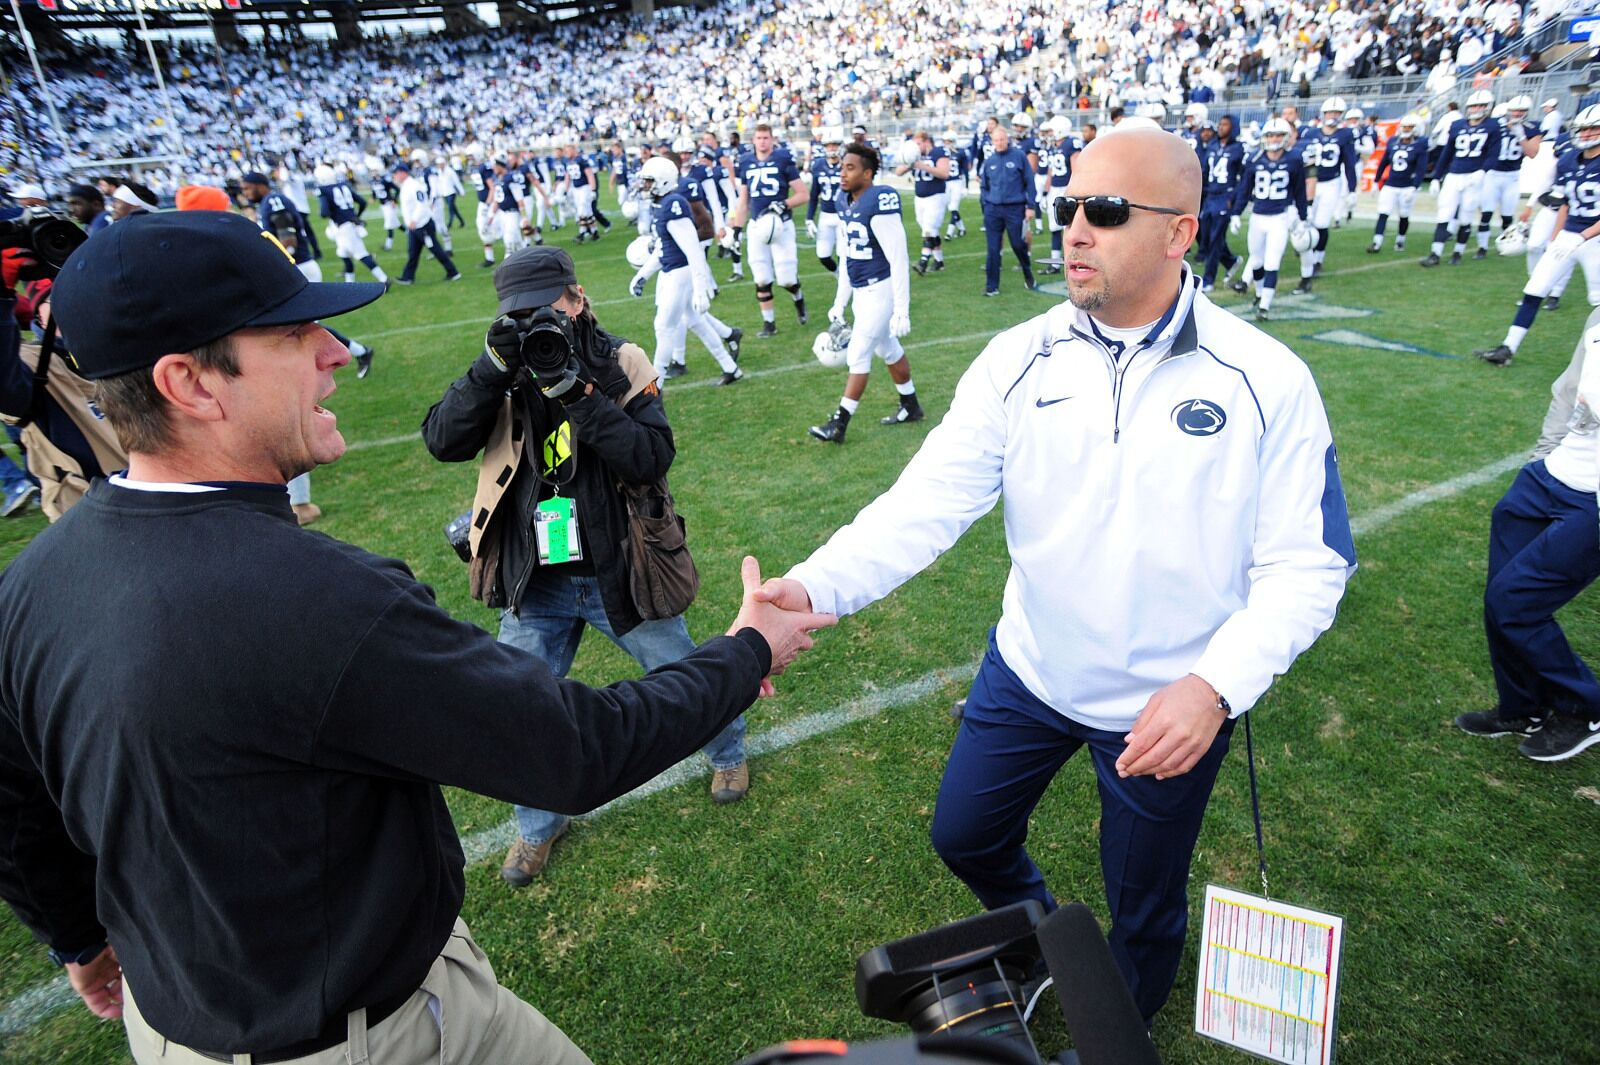 Penn State football: Jim Harbaugh offers proper credit to Nittany Lions